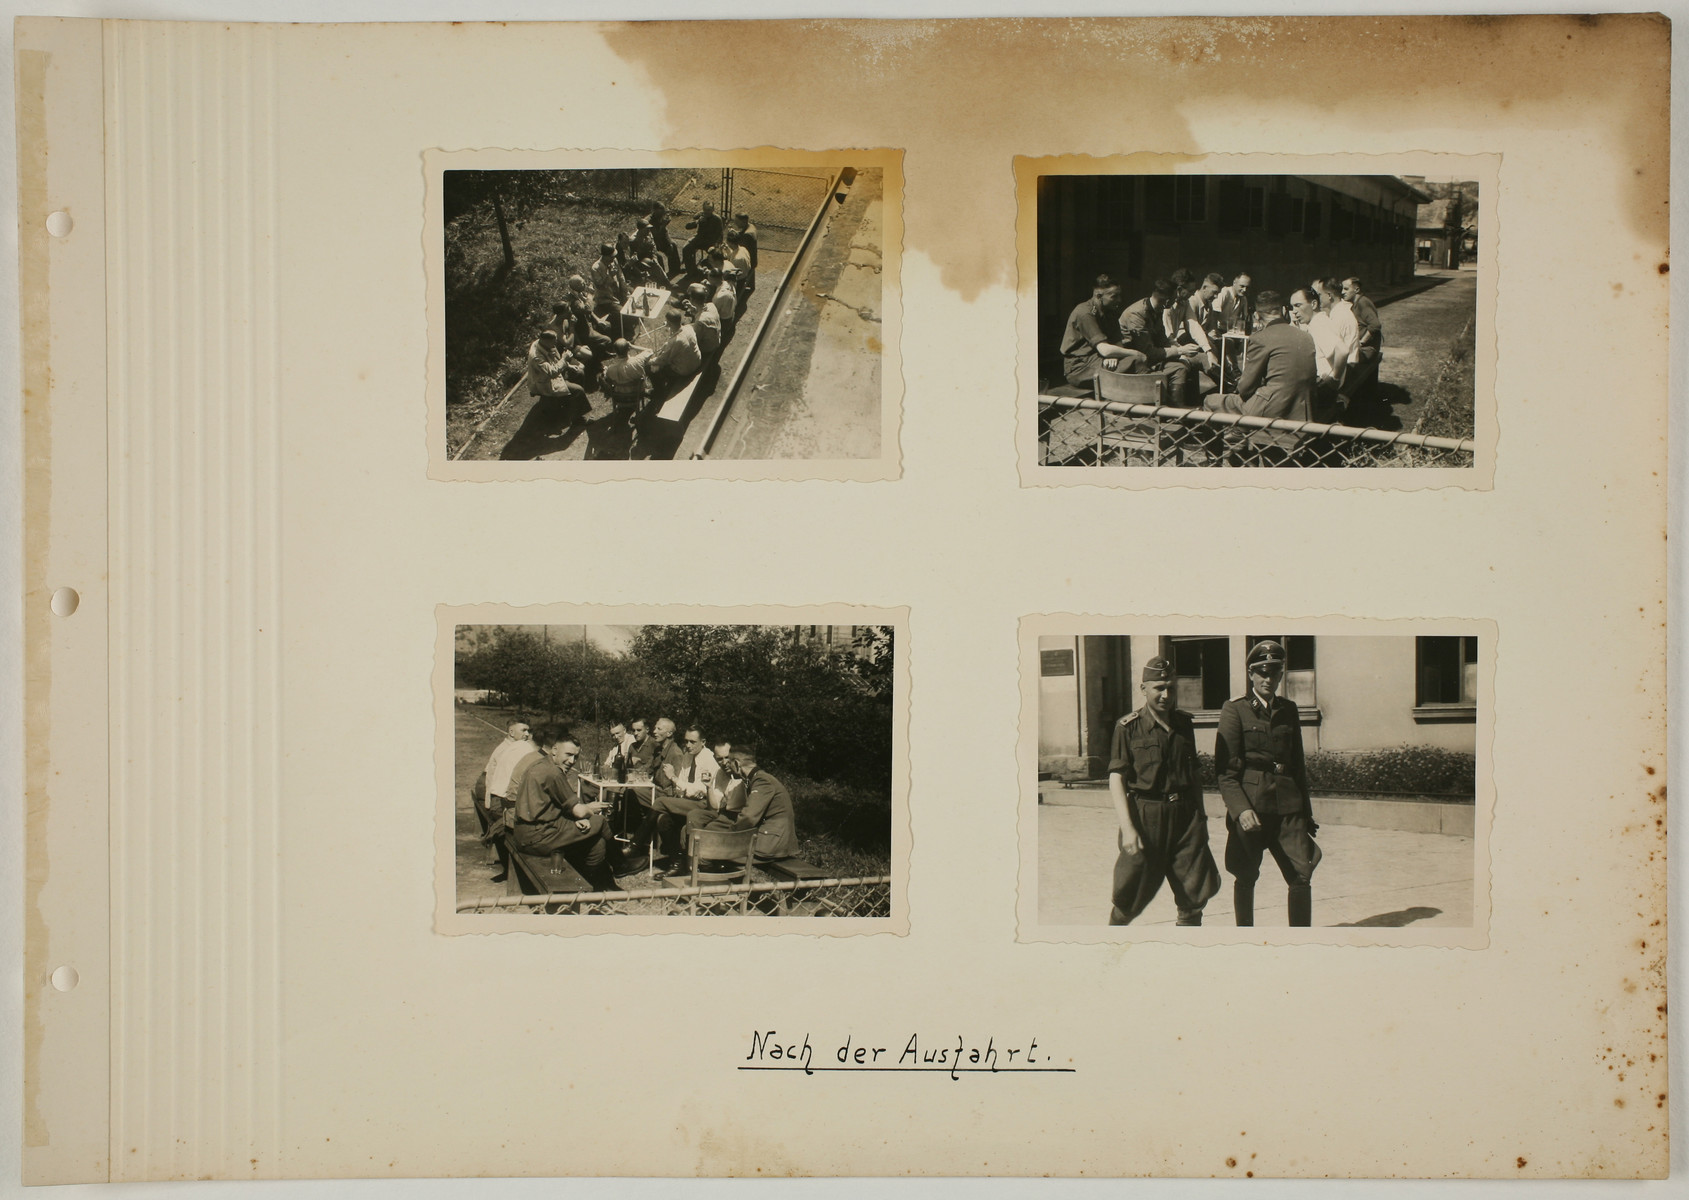 """One page from an album created by adjutant to the commandant Karl Hoecker, depicting SS activities in and around the Auschwitz concentration camp.  The original caption reads """"After the outing."""""""